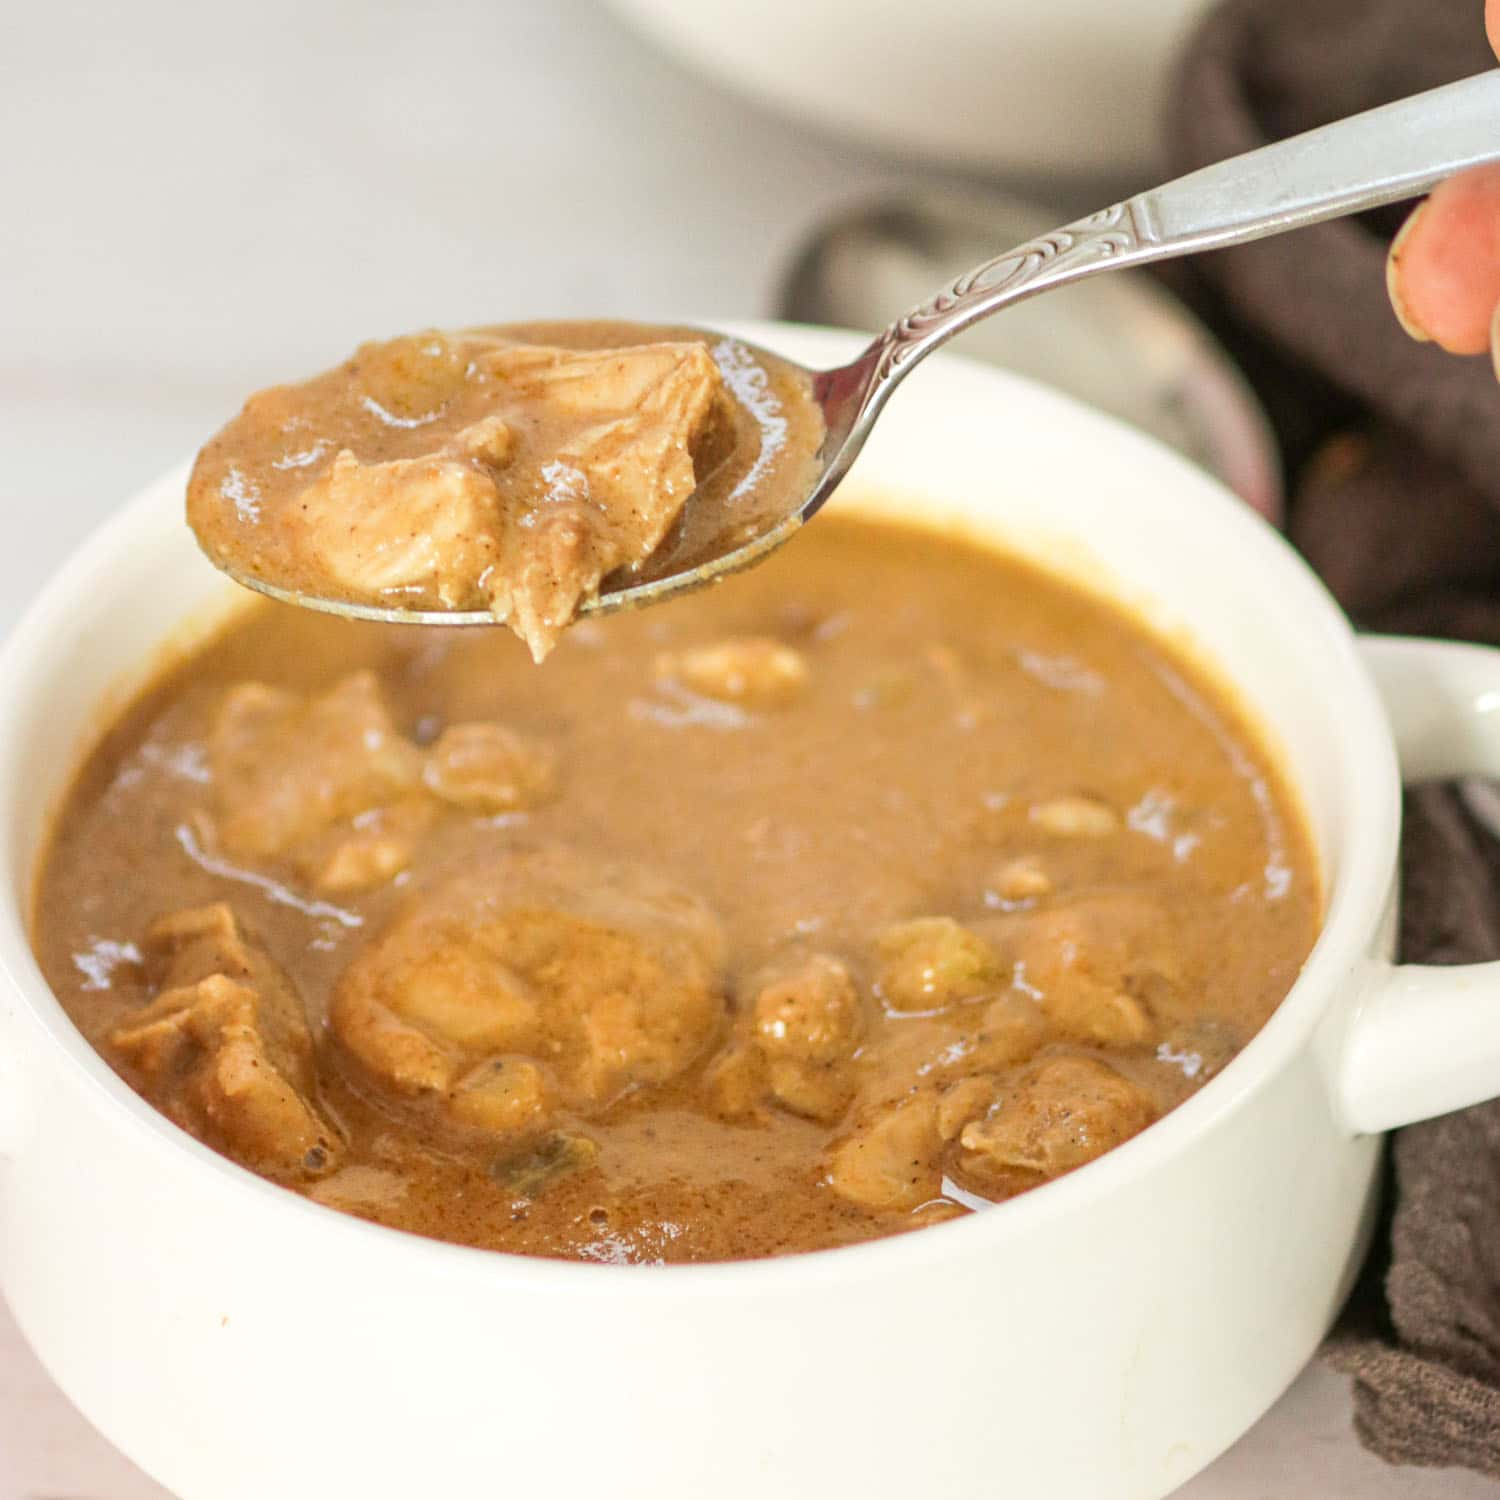 Suriname Style Peanut Soup in a bowl with a spoon